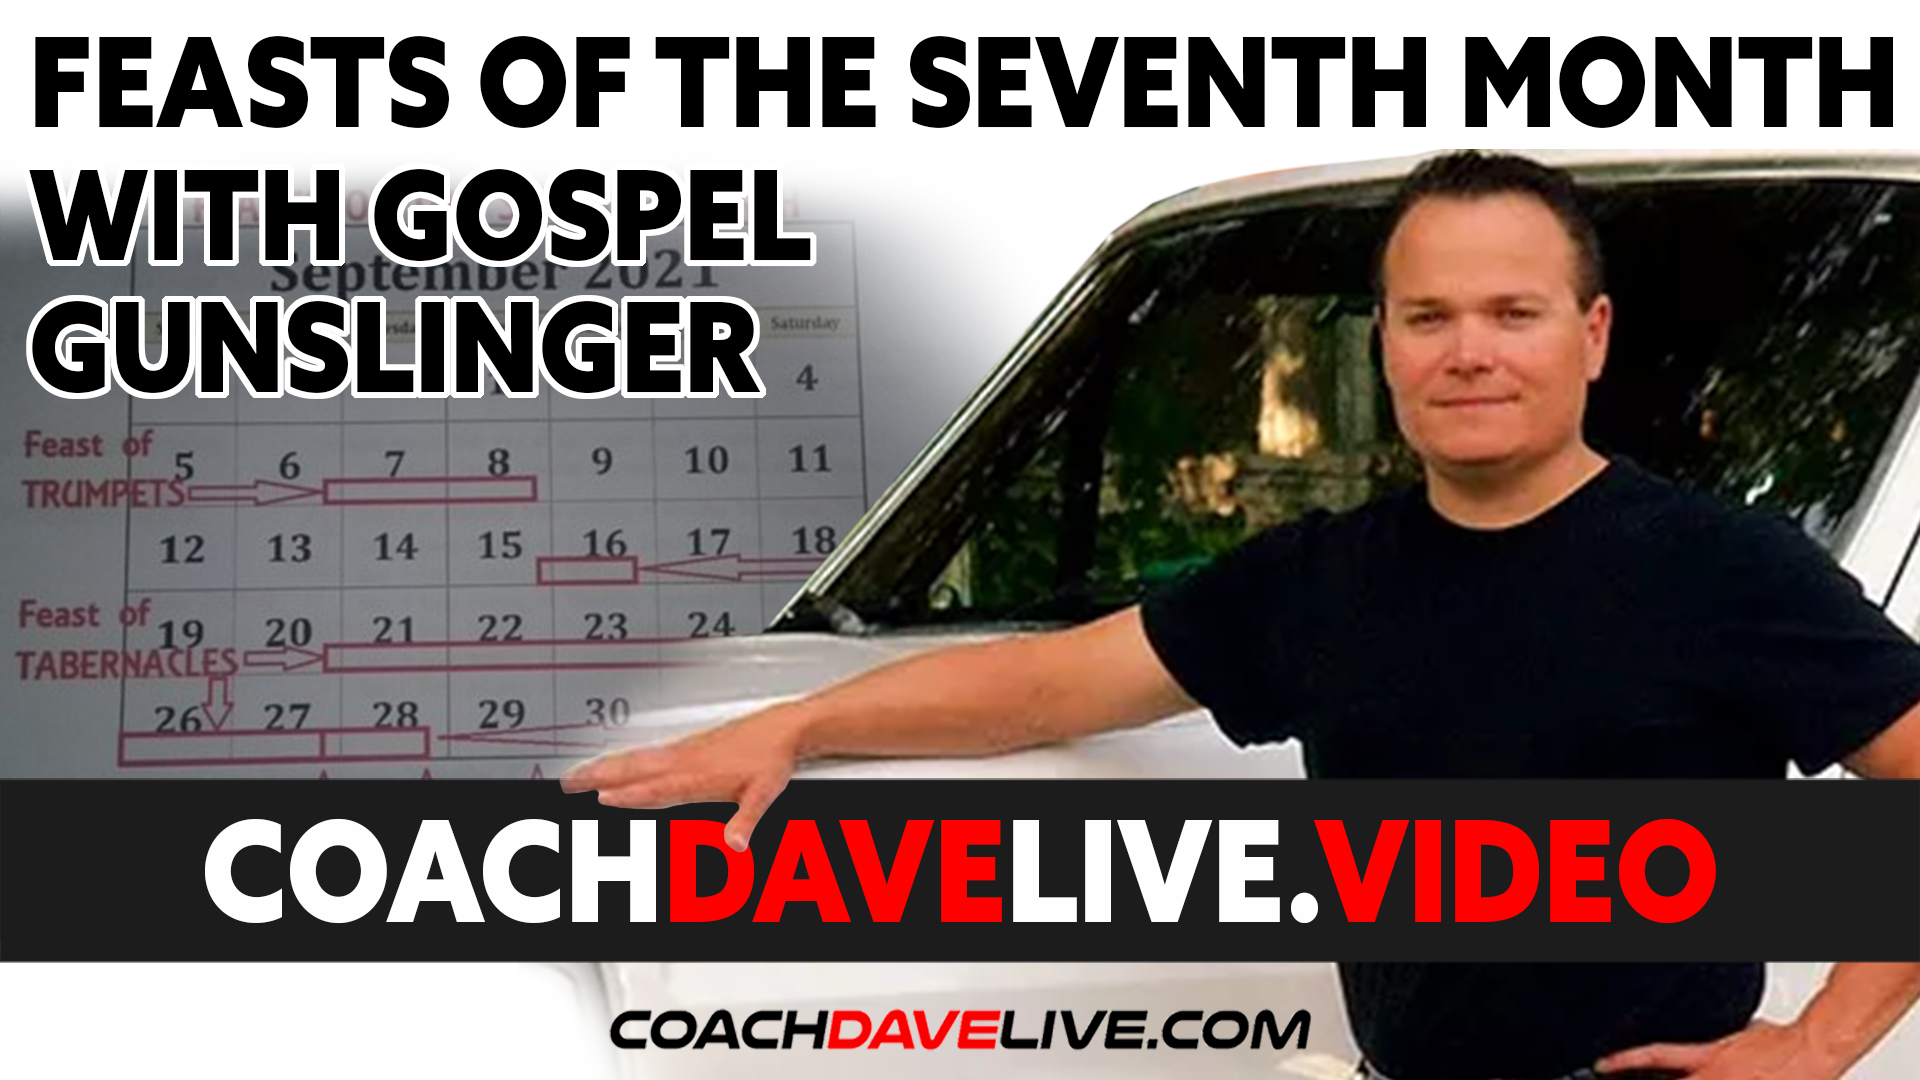 Coach Dave LIVE | 9-9-2021 | FEASTS OF THE SEVENTH MONTH WITH GOSPEL GUNSLINGER